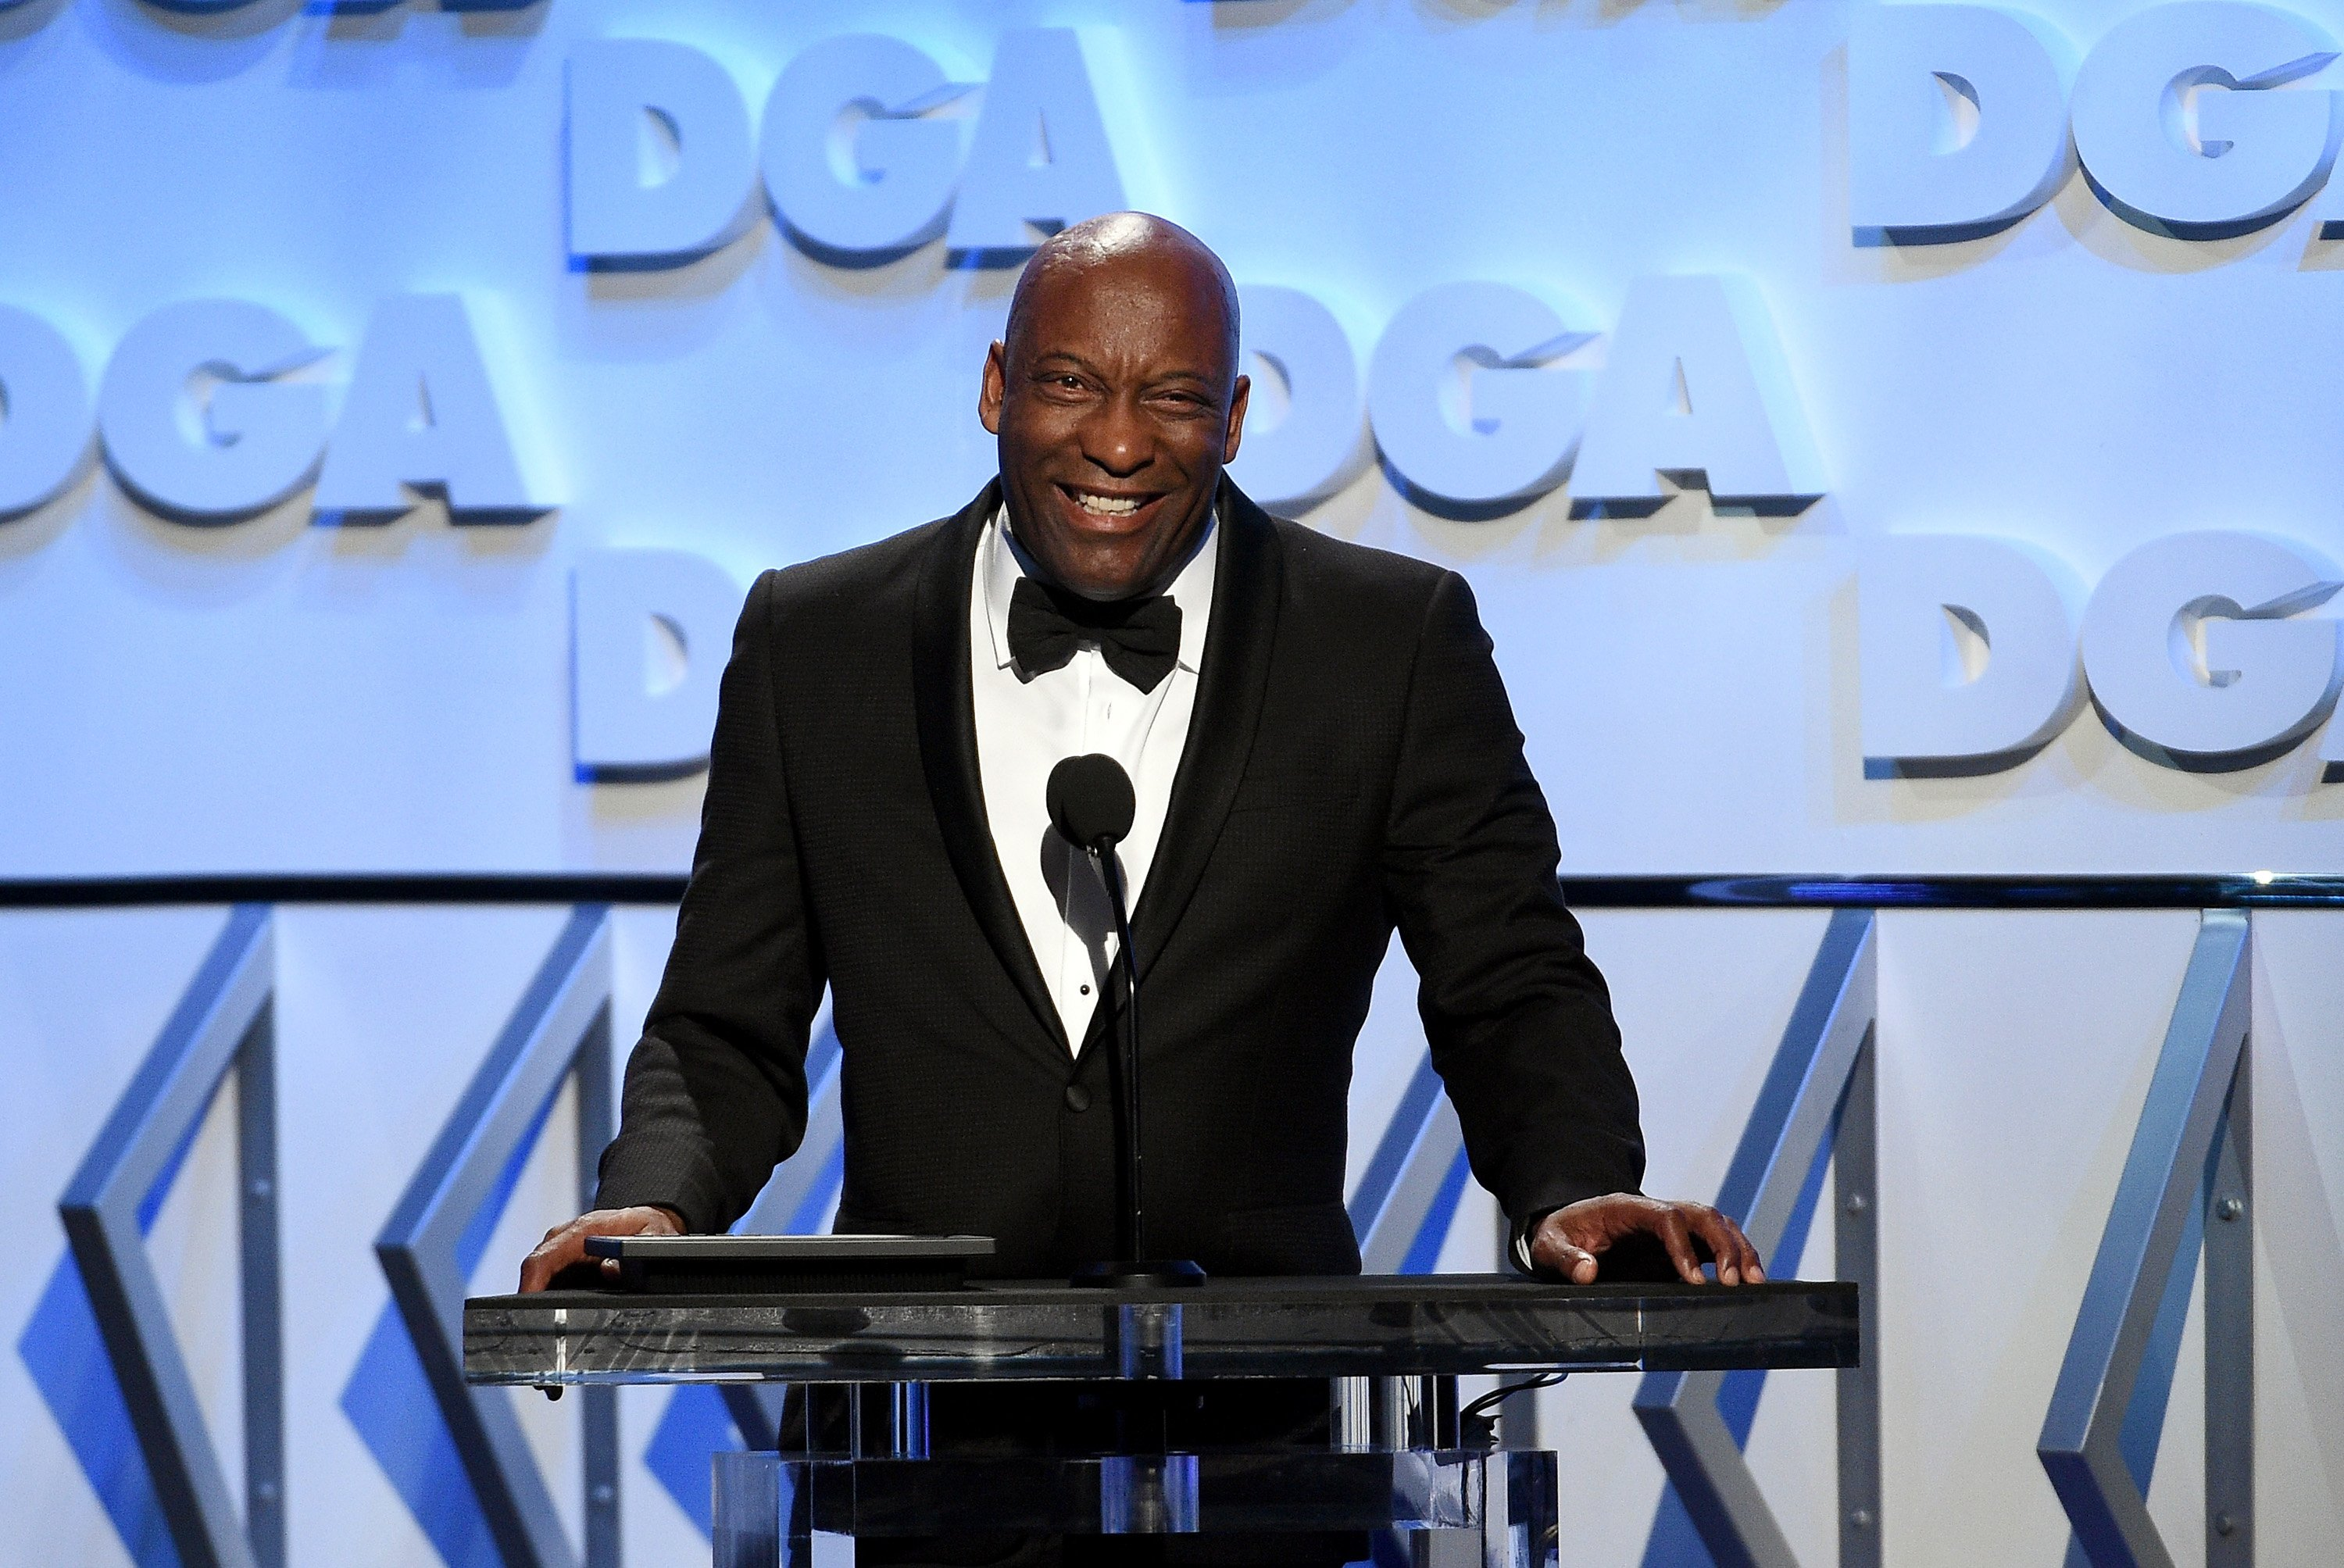 John Singleton at the 70th Annual Directors Guild Of America Awards on February 3, 2018 l Source: Getty Images